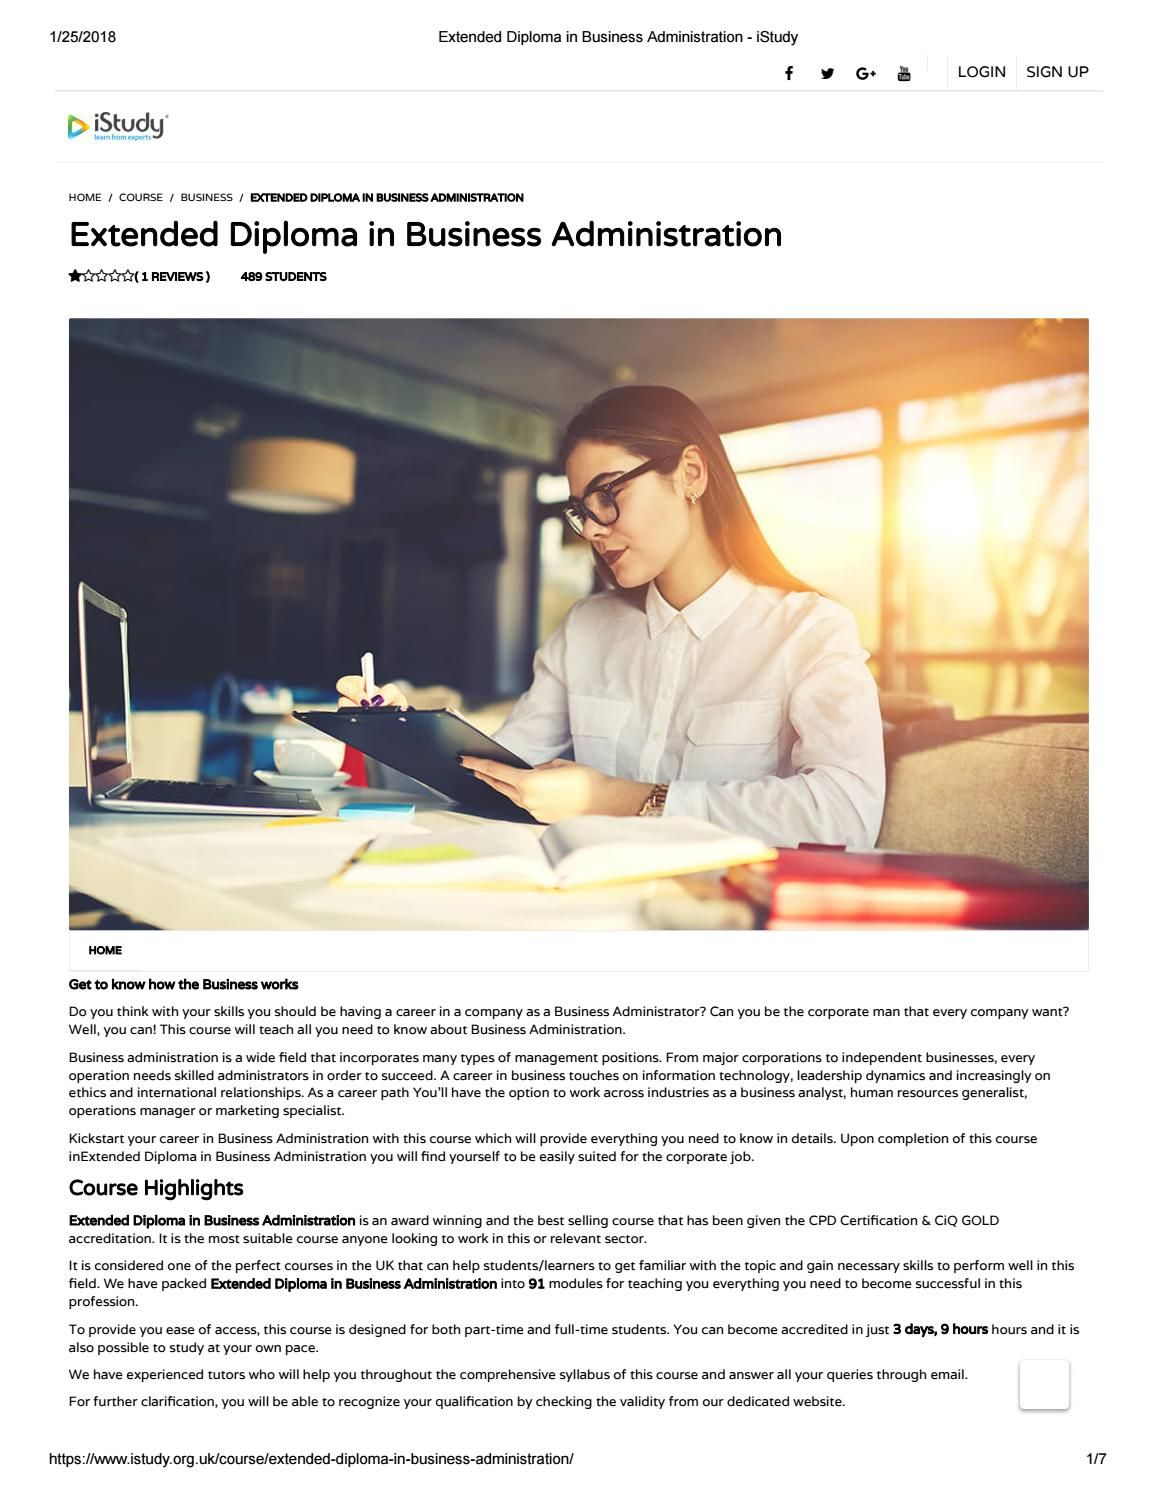 Extended Diploma In Business Administration Istudy Learn A New